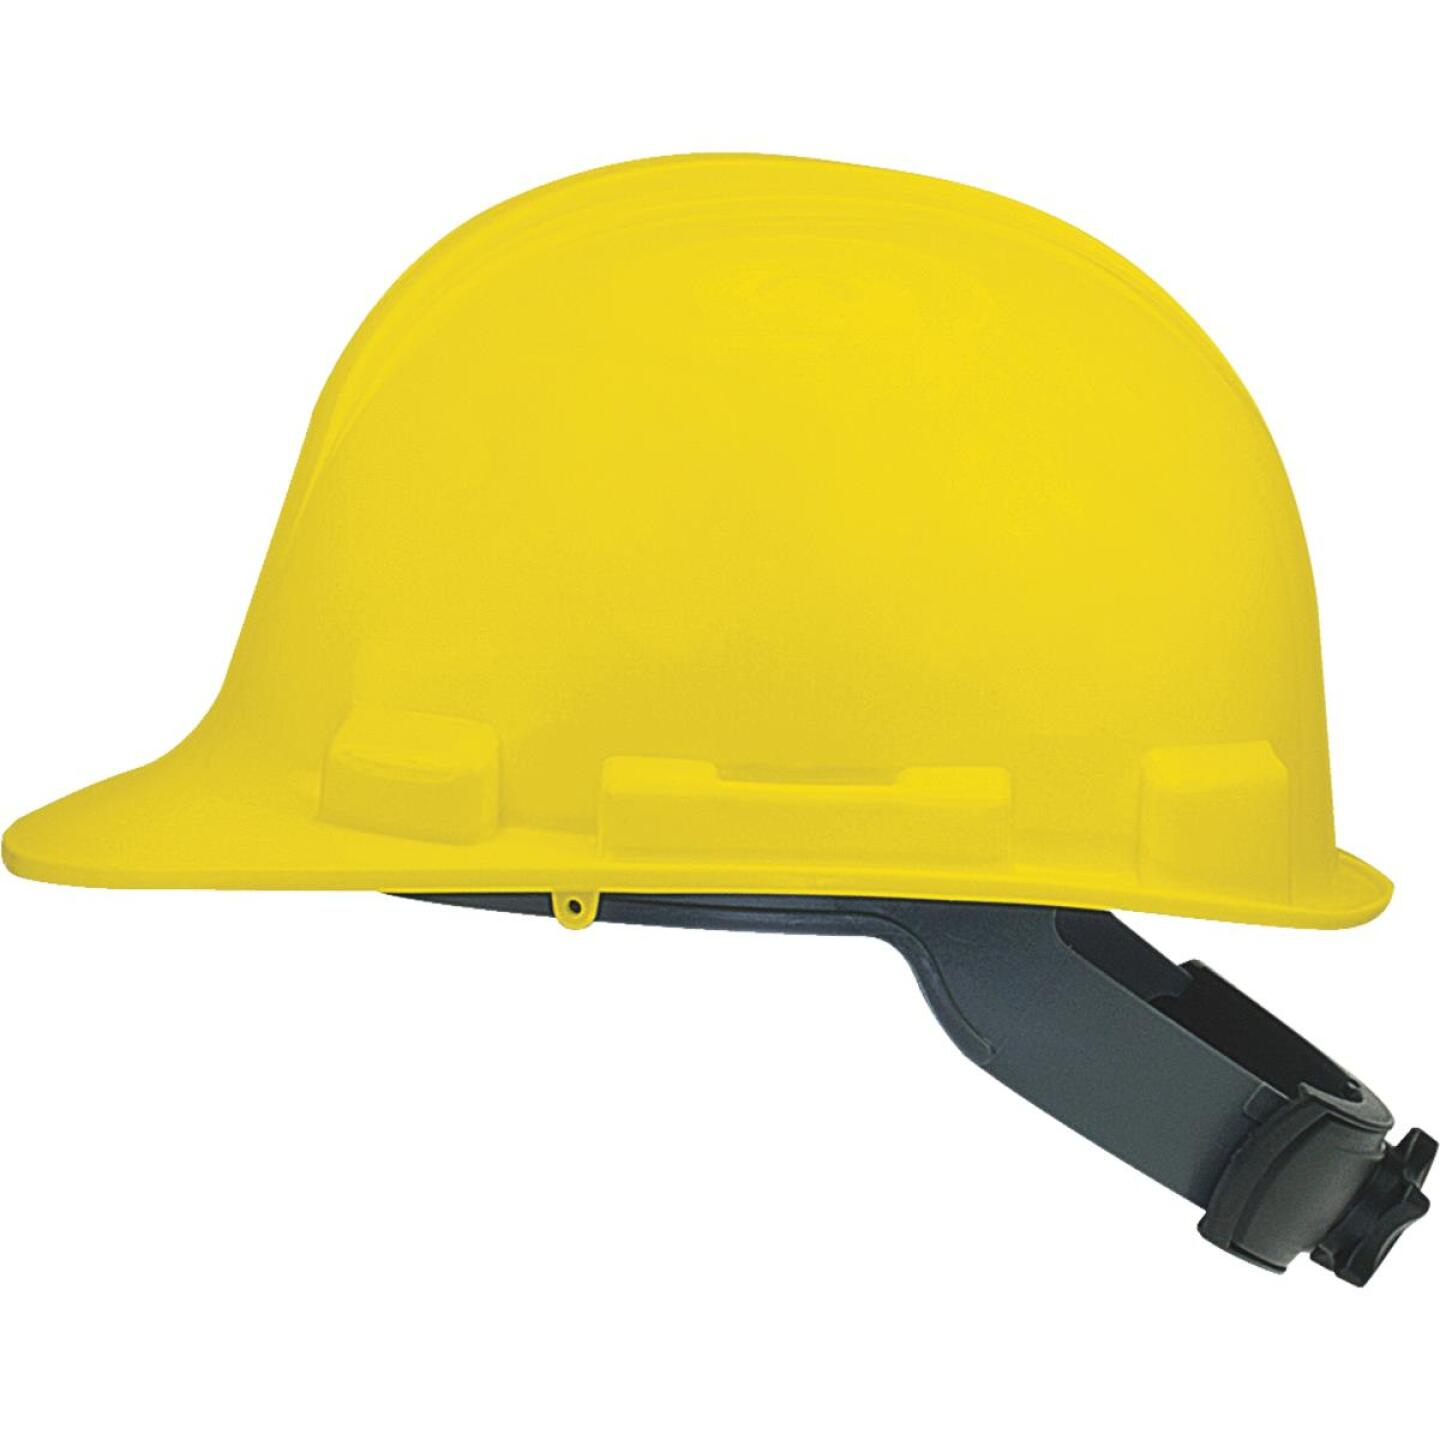 Safety Works Yellow Cap Style Wheel Ratchet Hard Hat Image 1